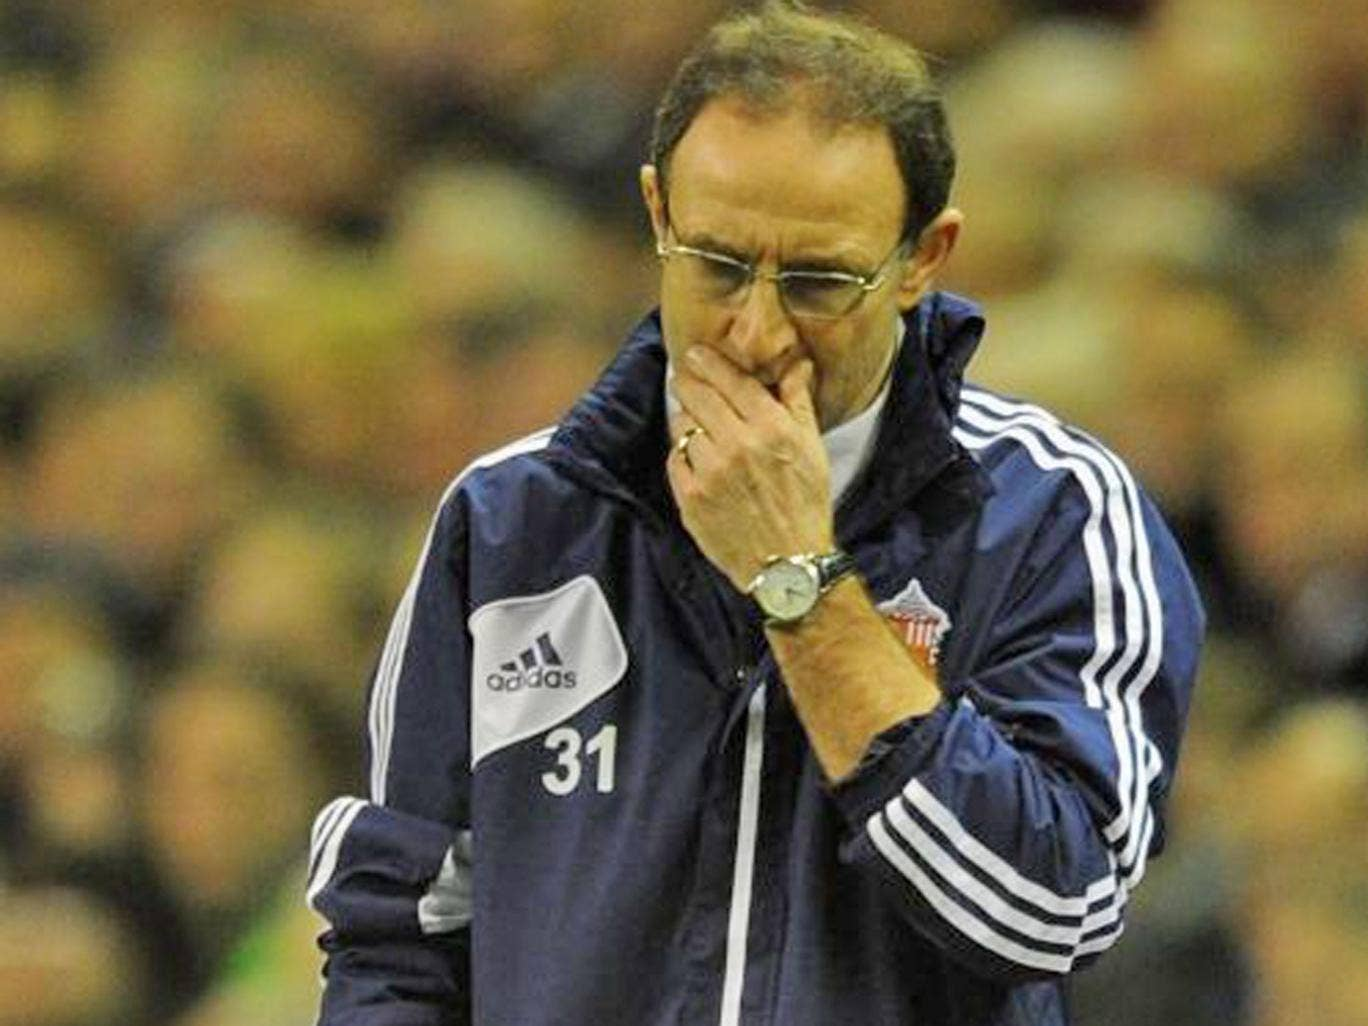 'Martin O'Neill was everything you wanted in a manager'